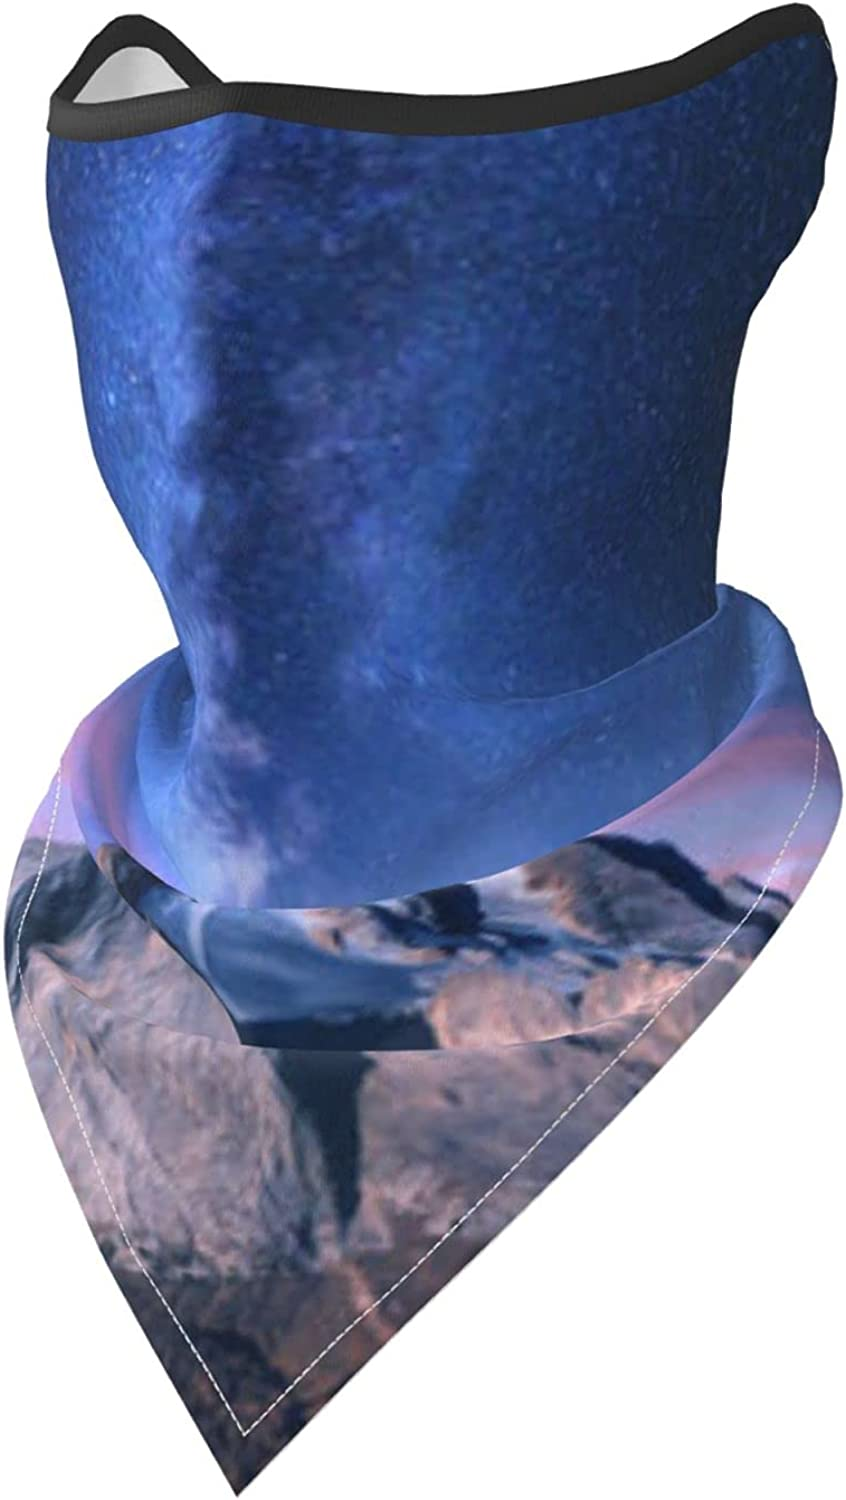 Starry Night Sky Star Skyline Over The Mountain Painting Breathable Bandana Face Mask Neck Gaiter Windproof Sports Mask Scarf Headwear for Men Women Outdoor Hiking Cycling Running Motorcycling